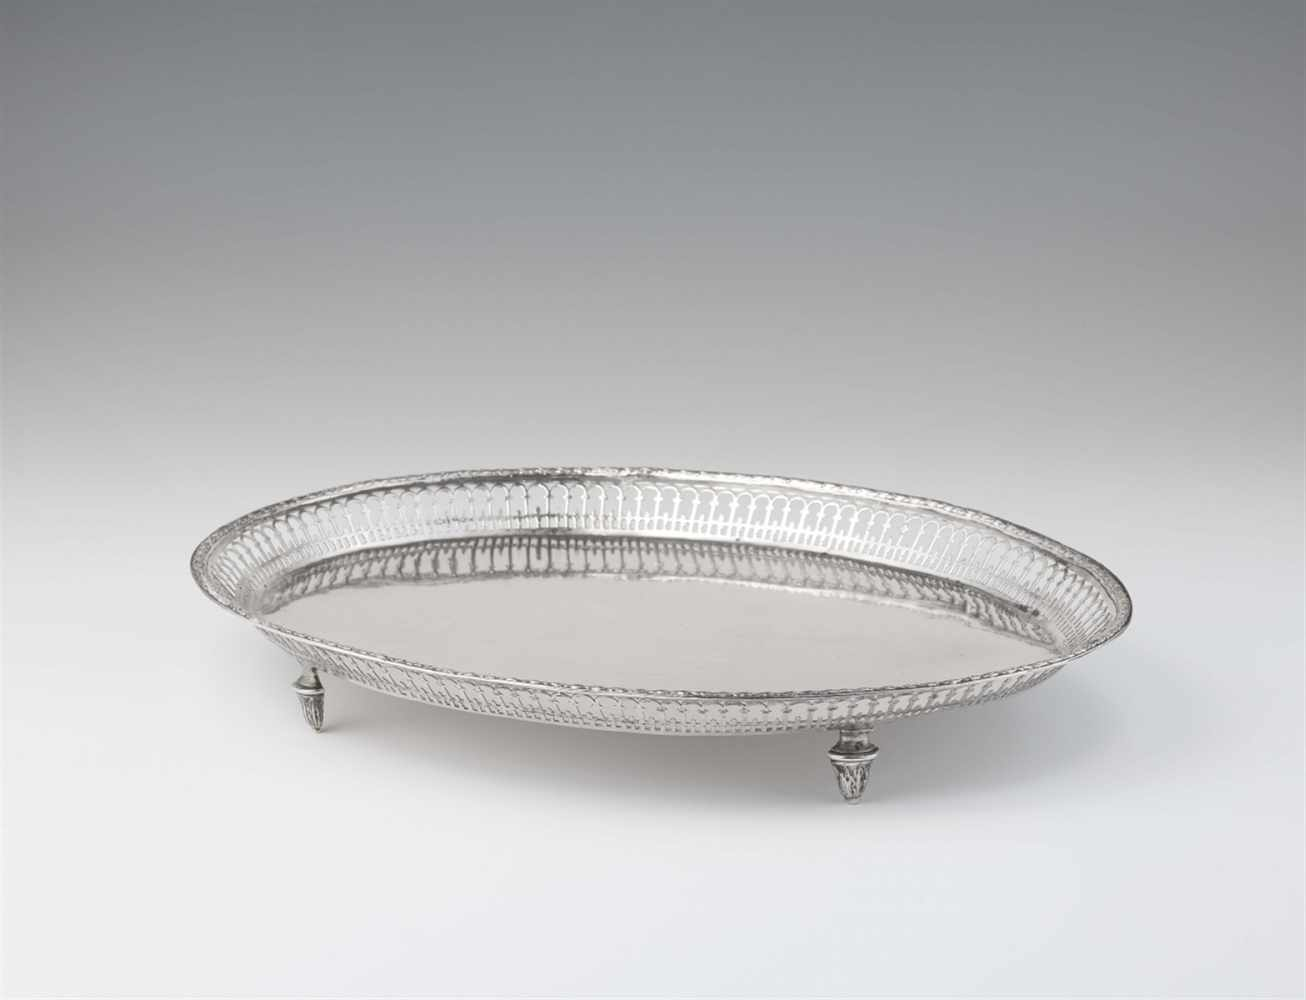 Lot 341 - A Neoclassical Augsburg silver platterOval tray on four supports with pierced gallery rim. L 35.5; W